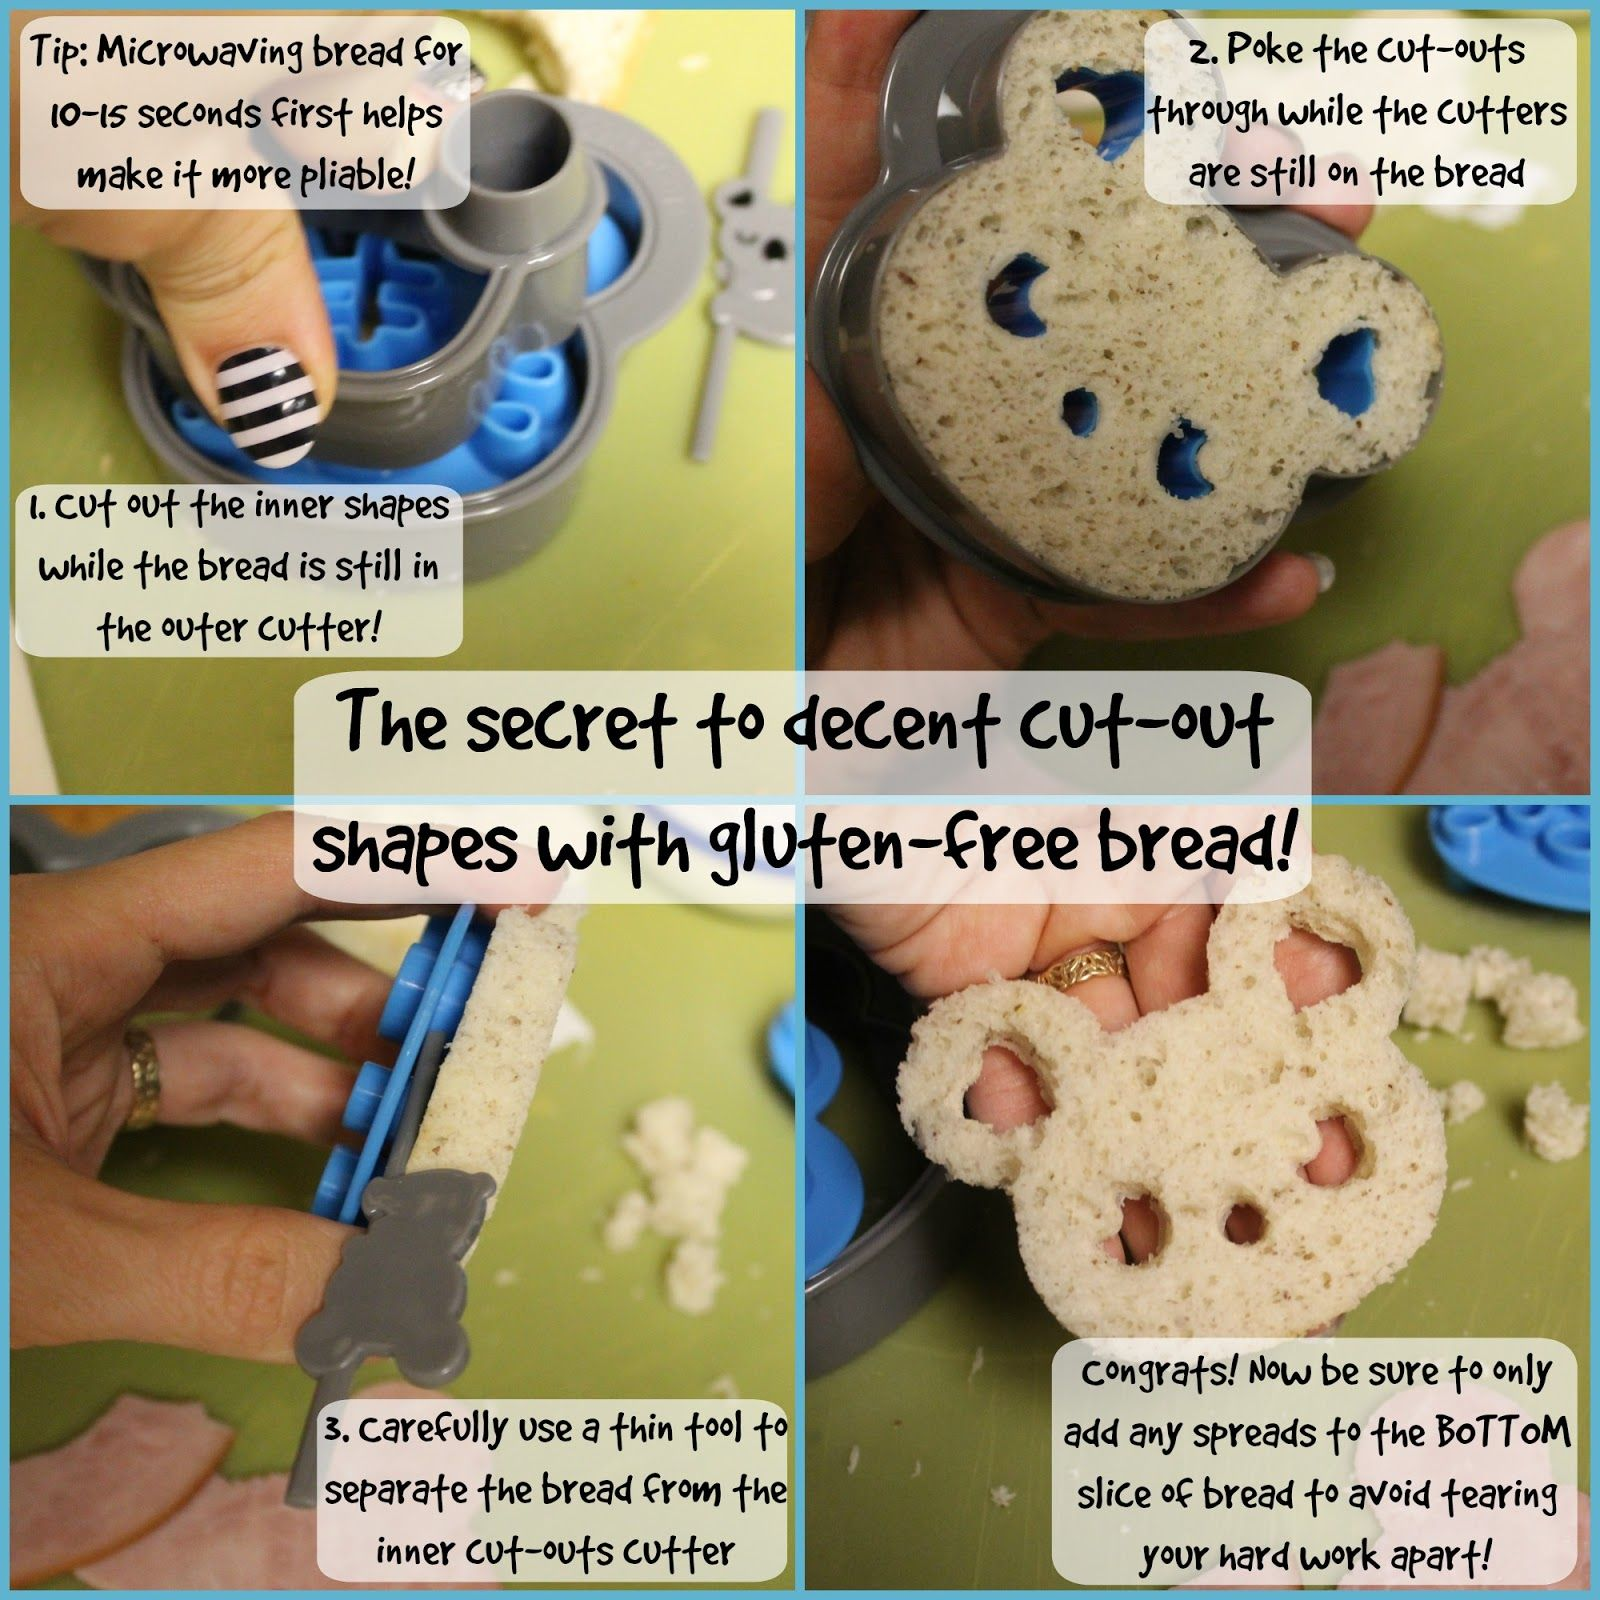 How to use CuteZCute cut-out cutters on gluten-free bread without it falling apart!